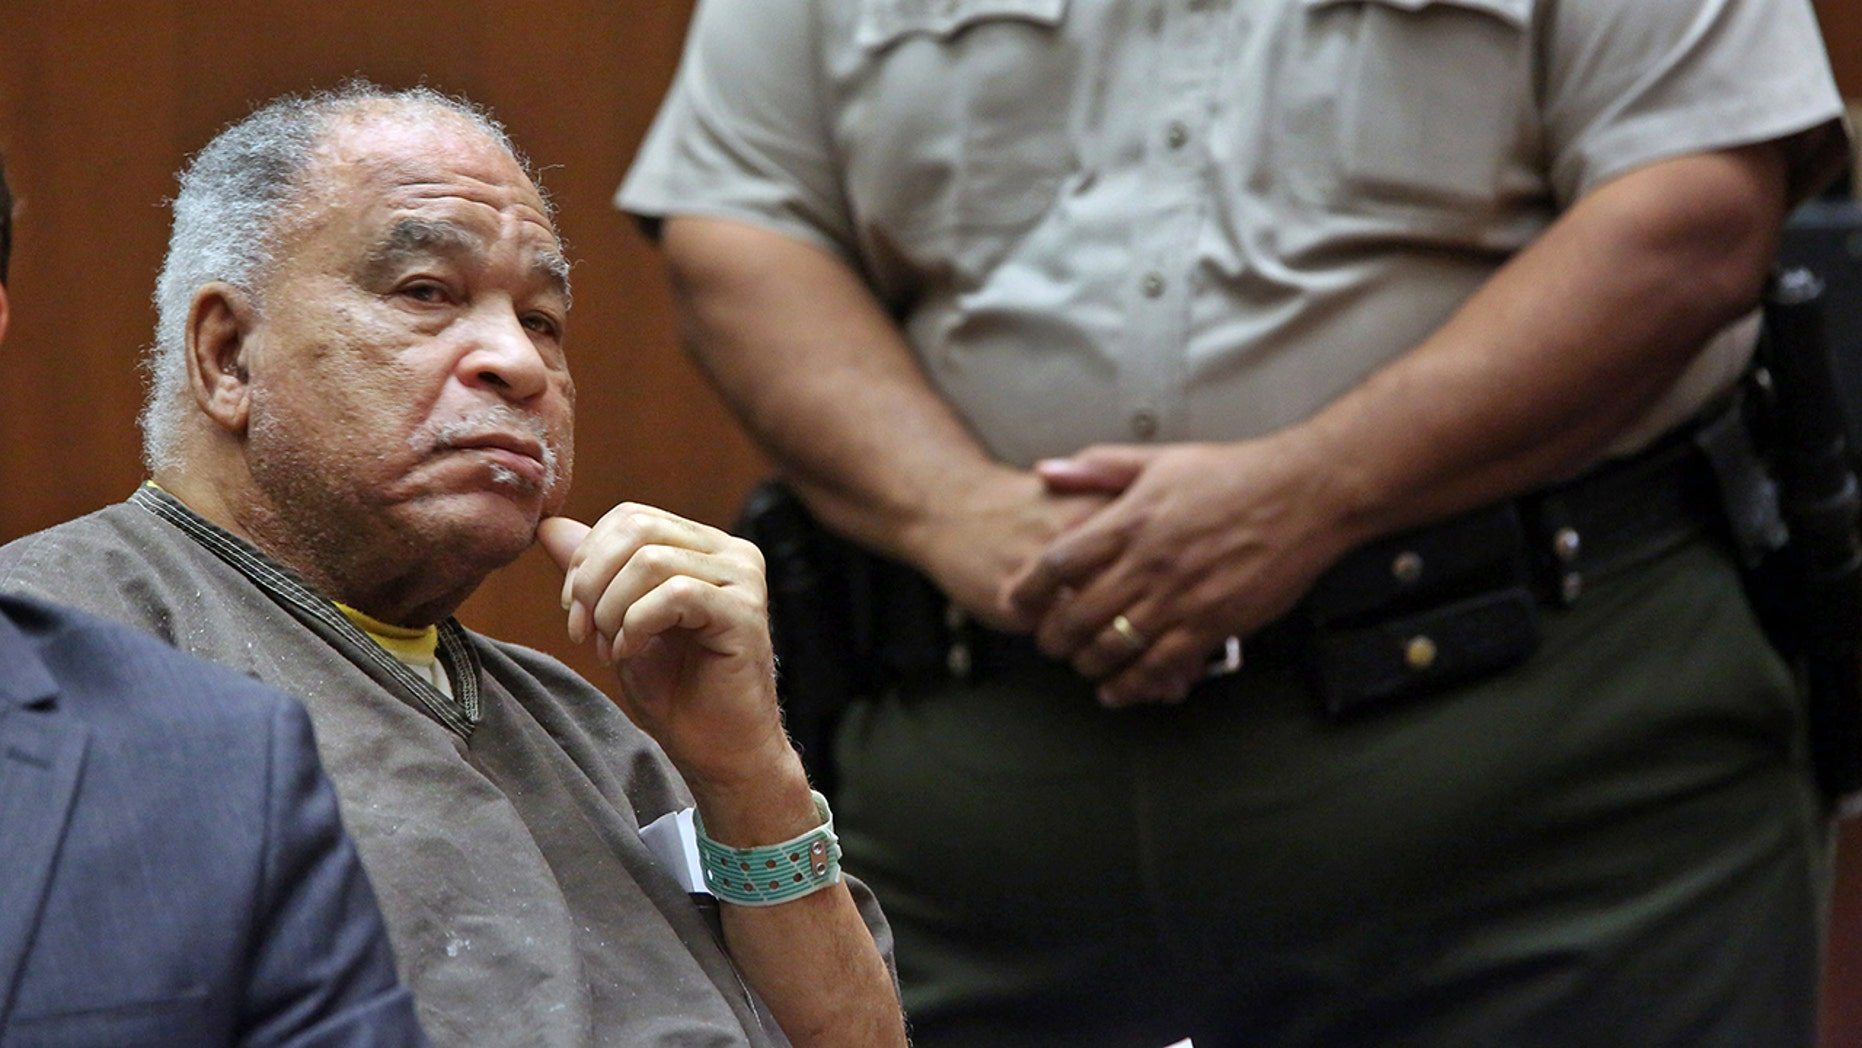 Samuel Little, 78, confessed to 90 killings, making him one of history's most prolific serial killers.